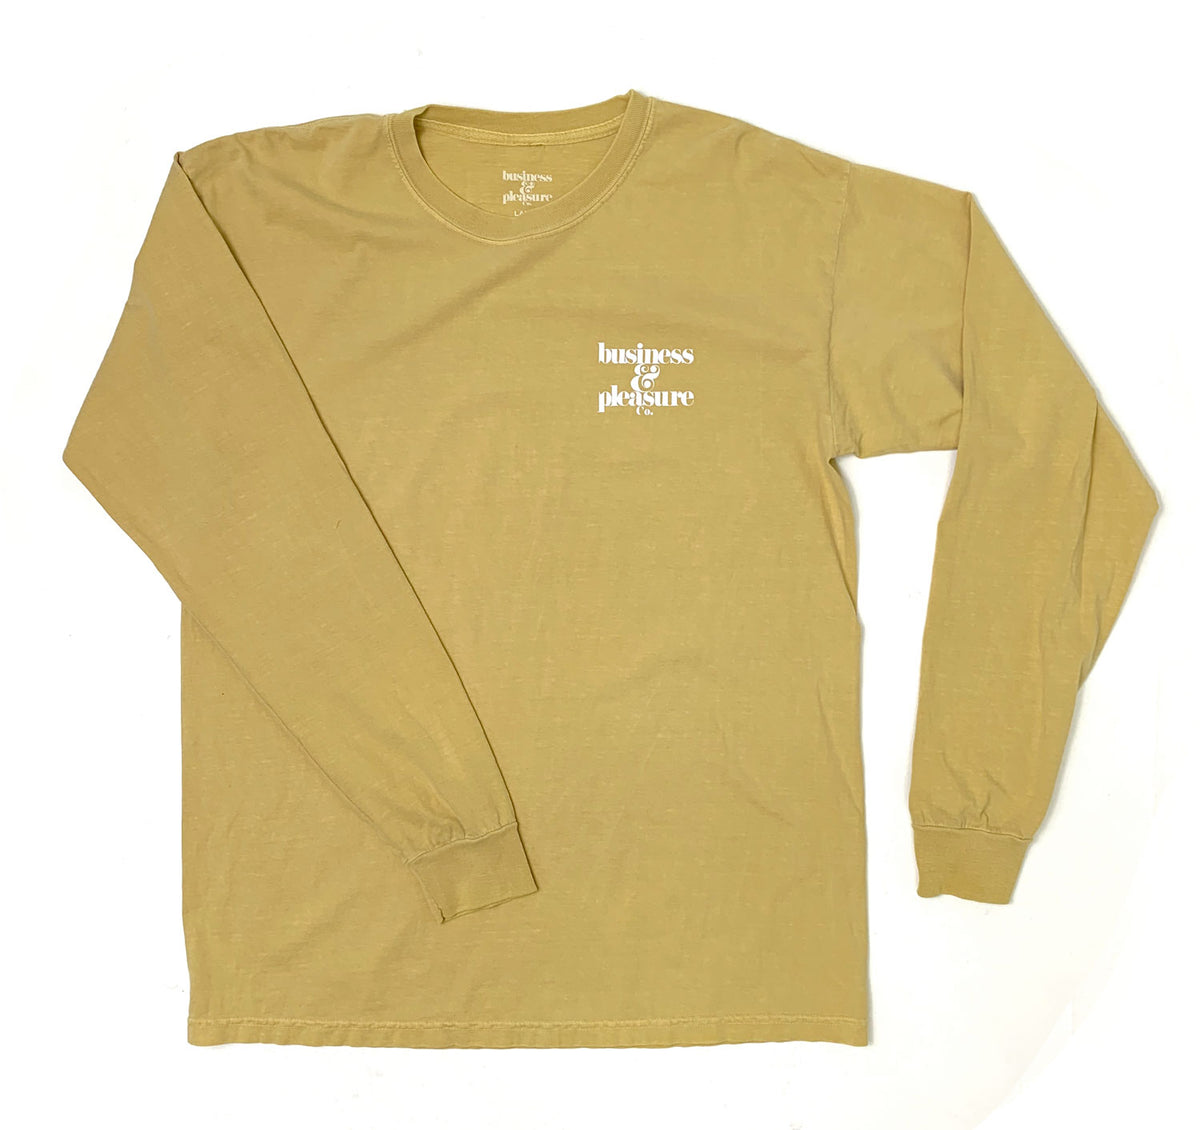 The B&PCO. Long Sleeve Tee - Vintage Yellow - Business & Pleasure Co